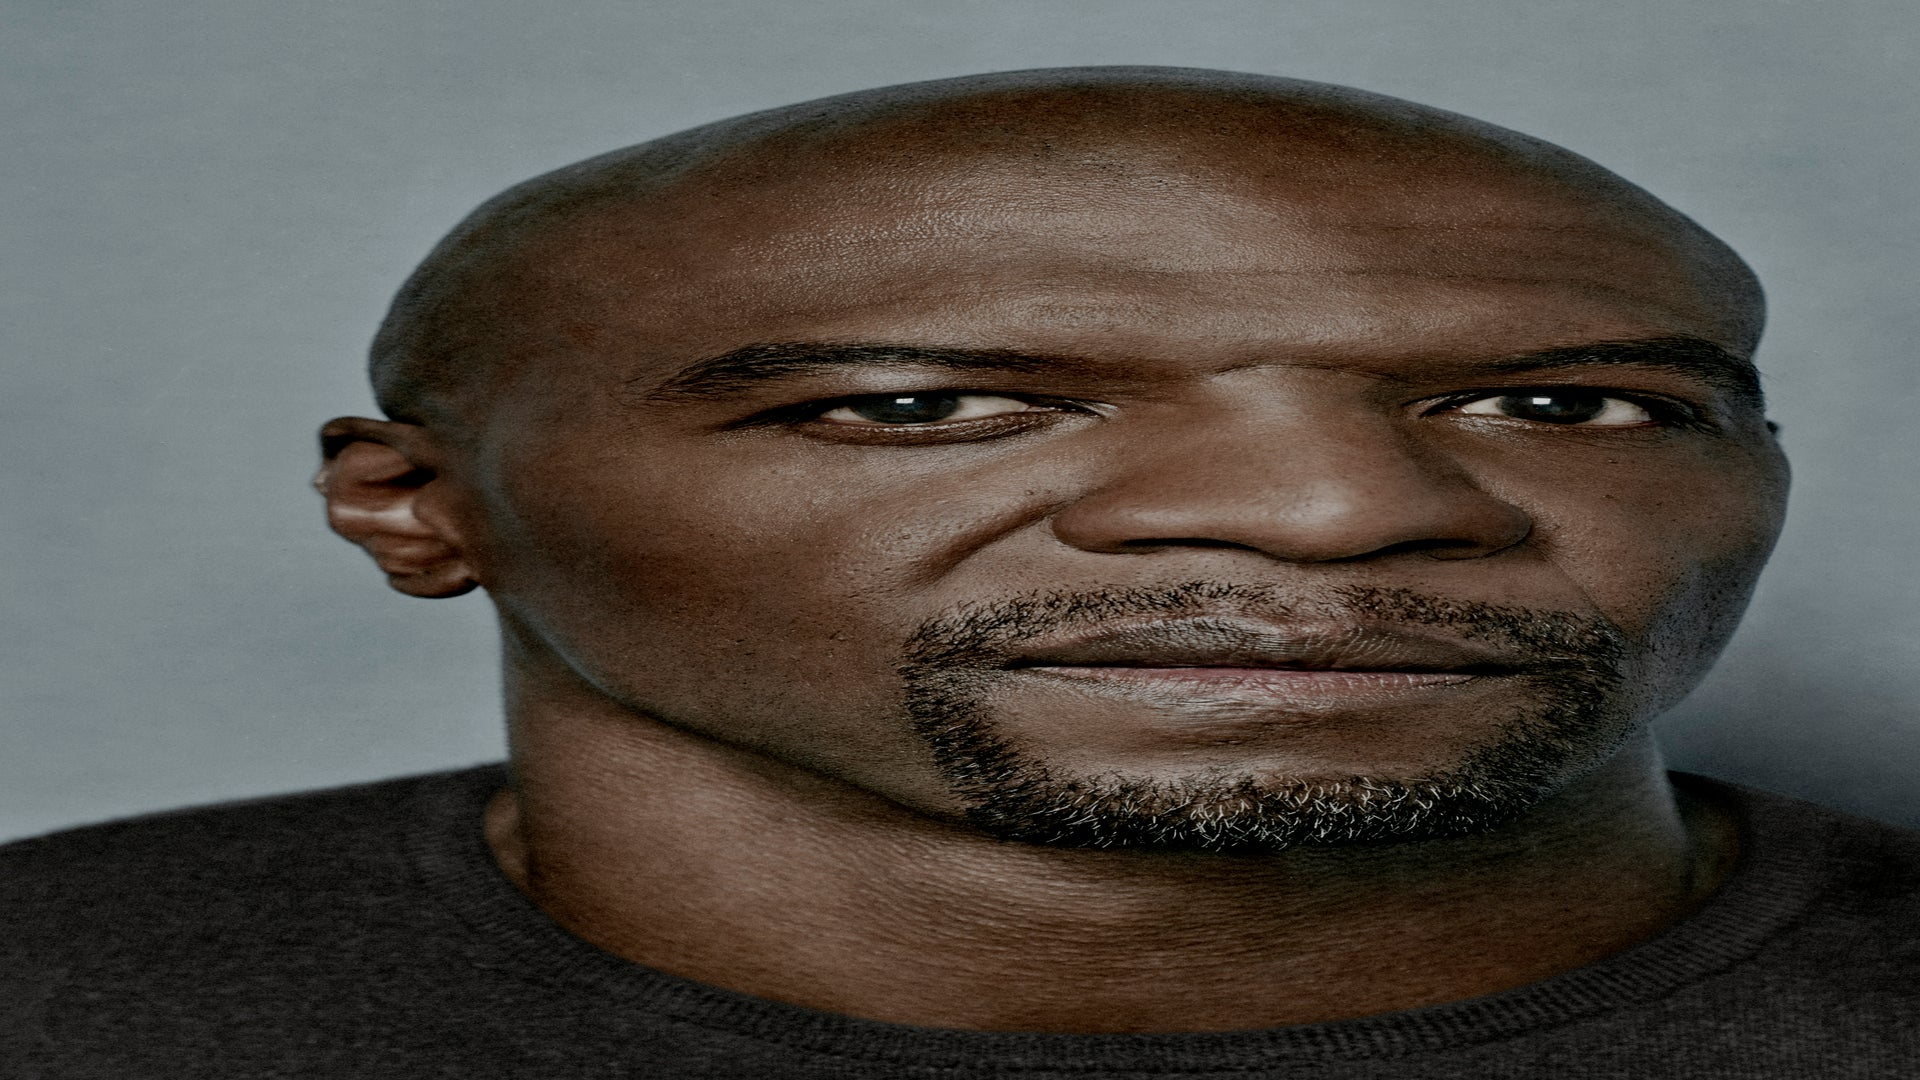 The Quick Read: Agent Who Groped Terry Crews Will Not Be Charged